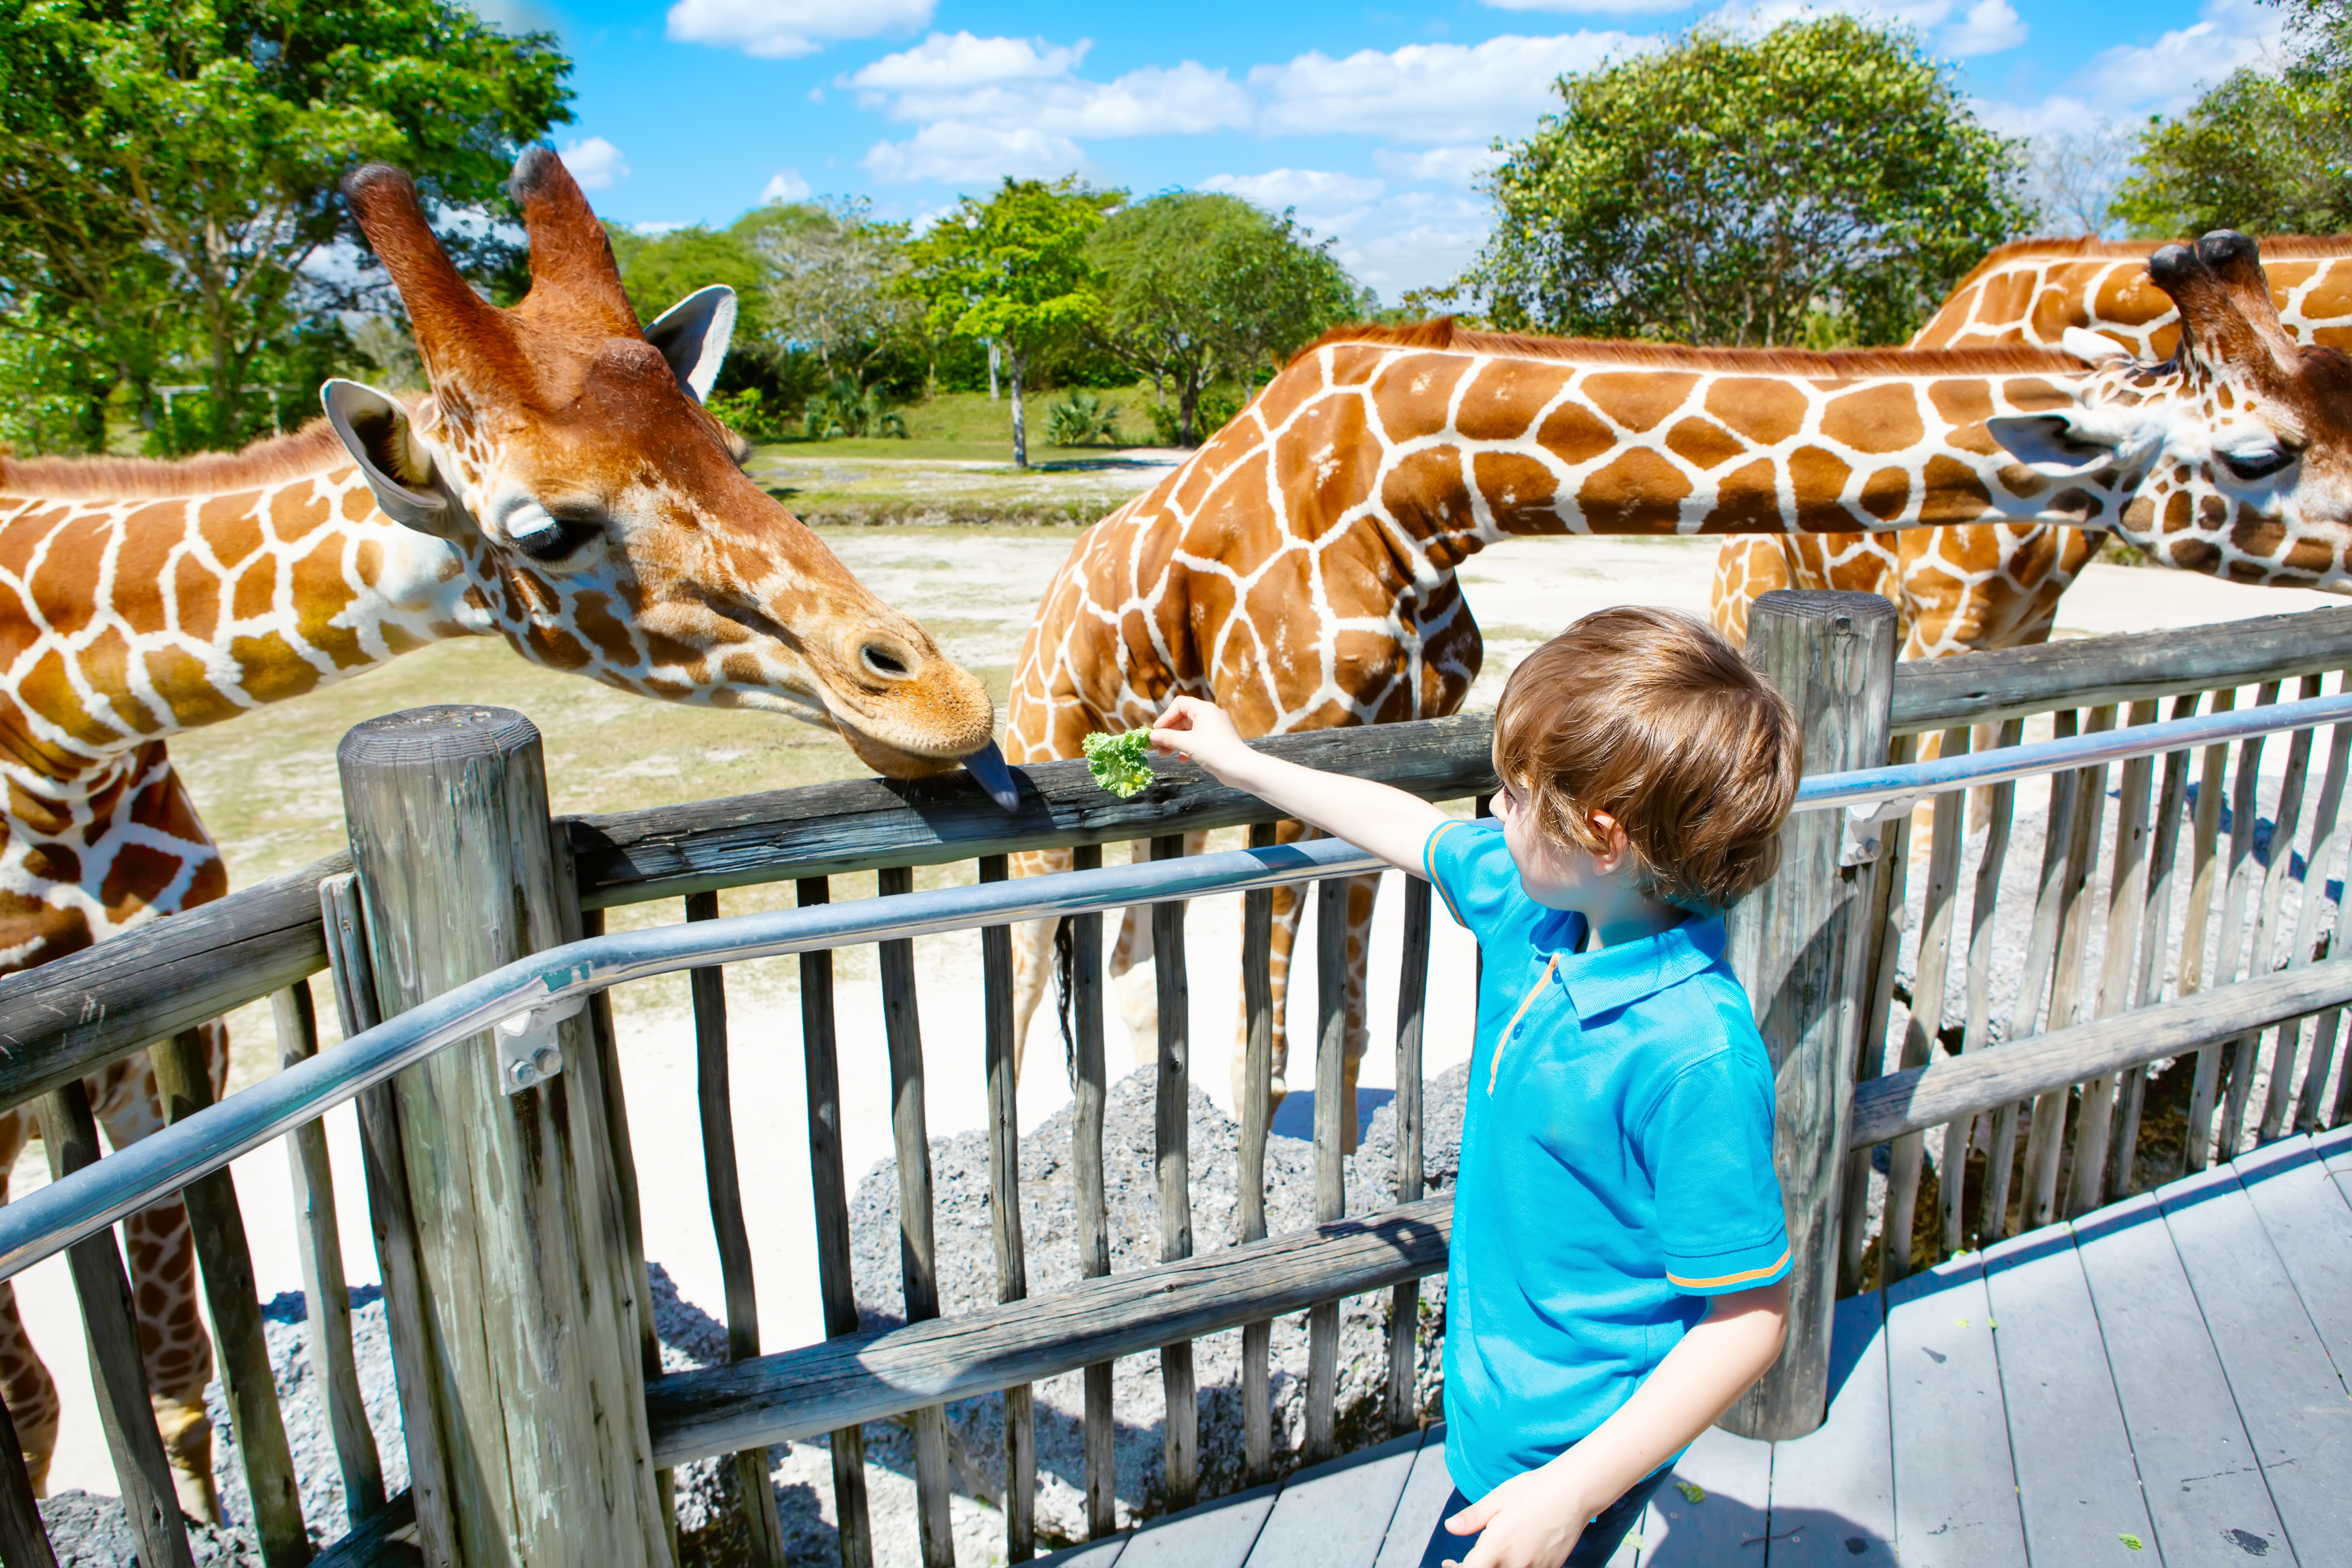 A boy feeds the giraffes at Zoo Miami.